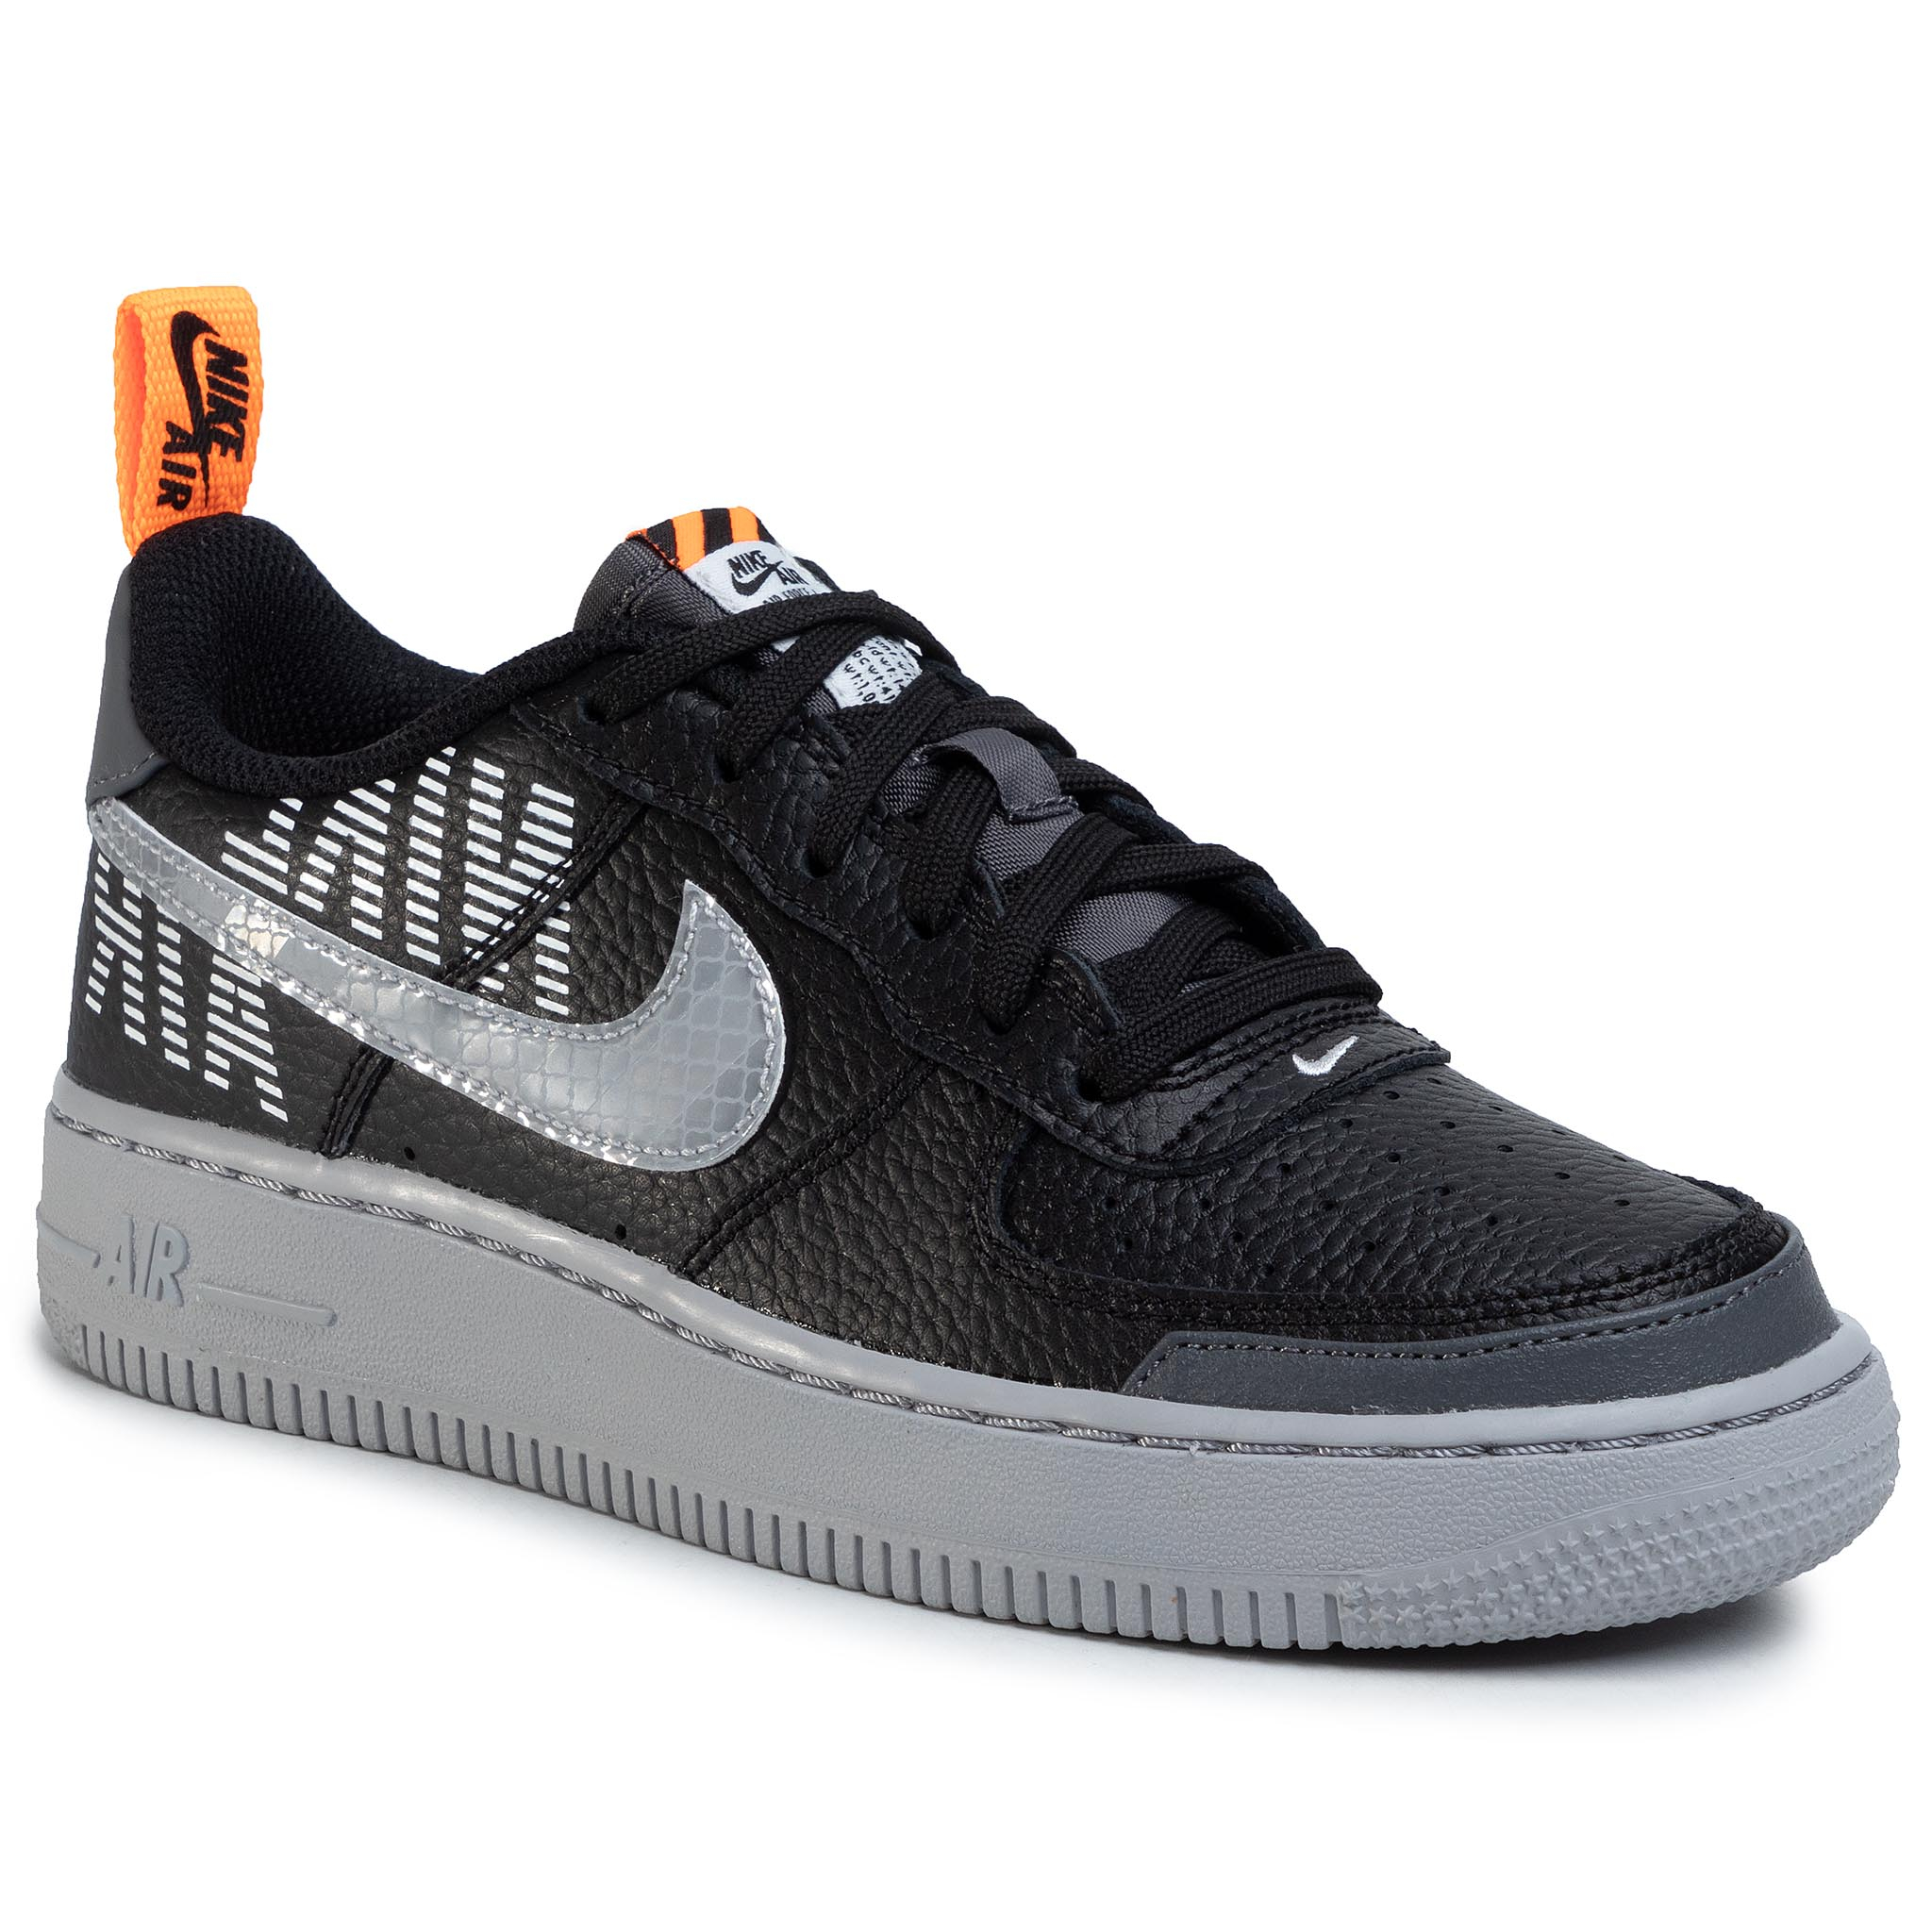 Topánky NIKE - Air Force 1 LV8 2 (GS) BQ5484 001 Black/Wolf Grey/Dark Grey